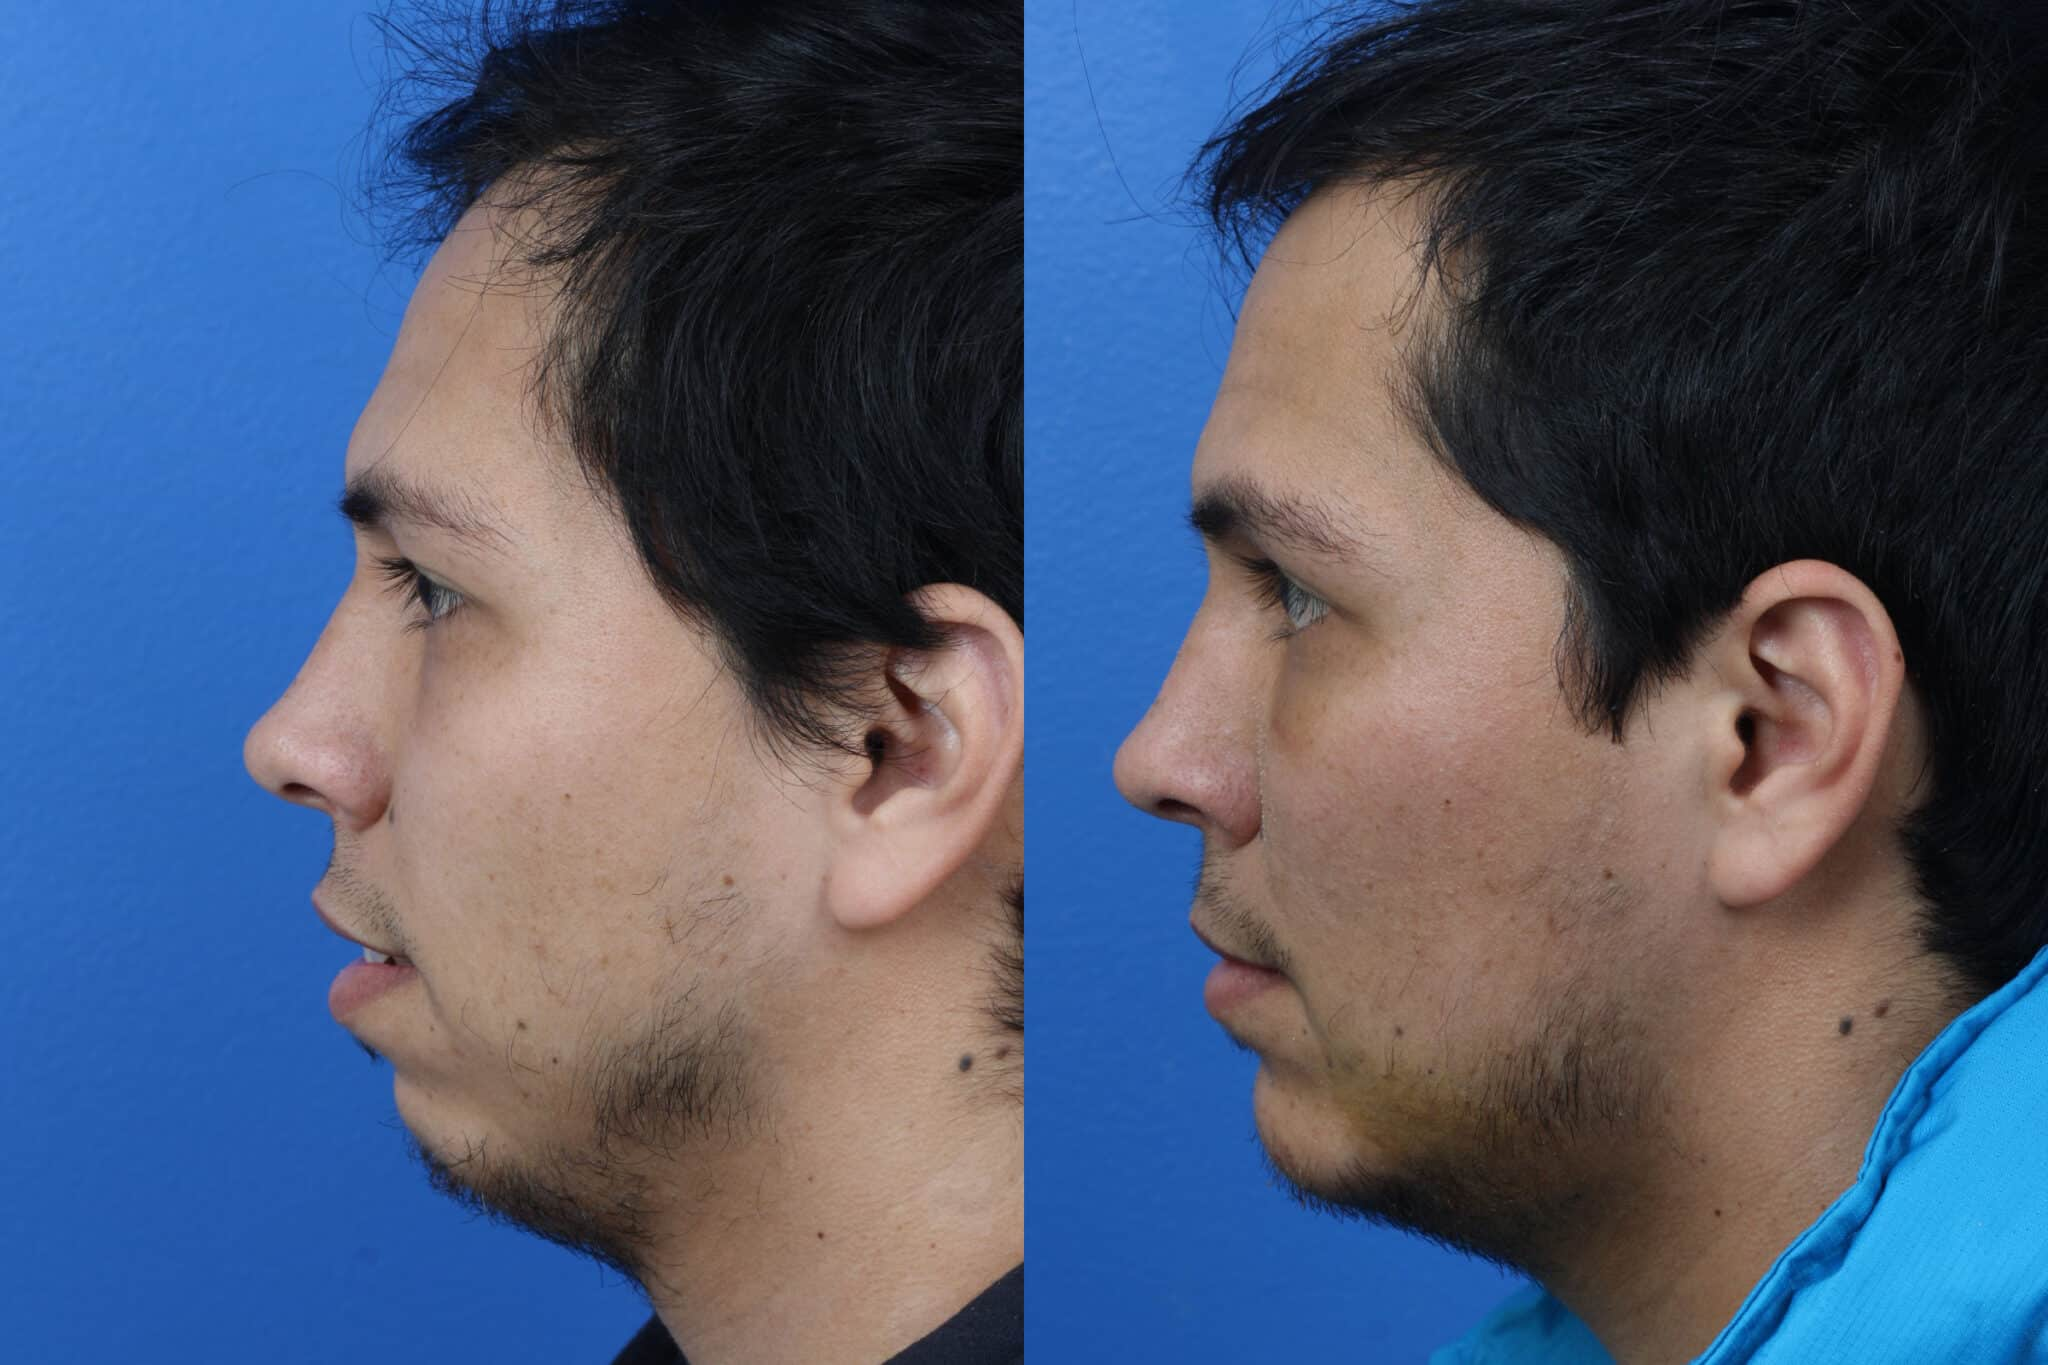 Chin Implant to Augment the Chin of a Male Patient by Dr. Miller